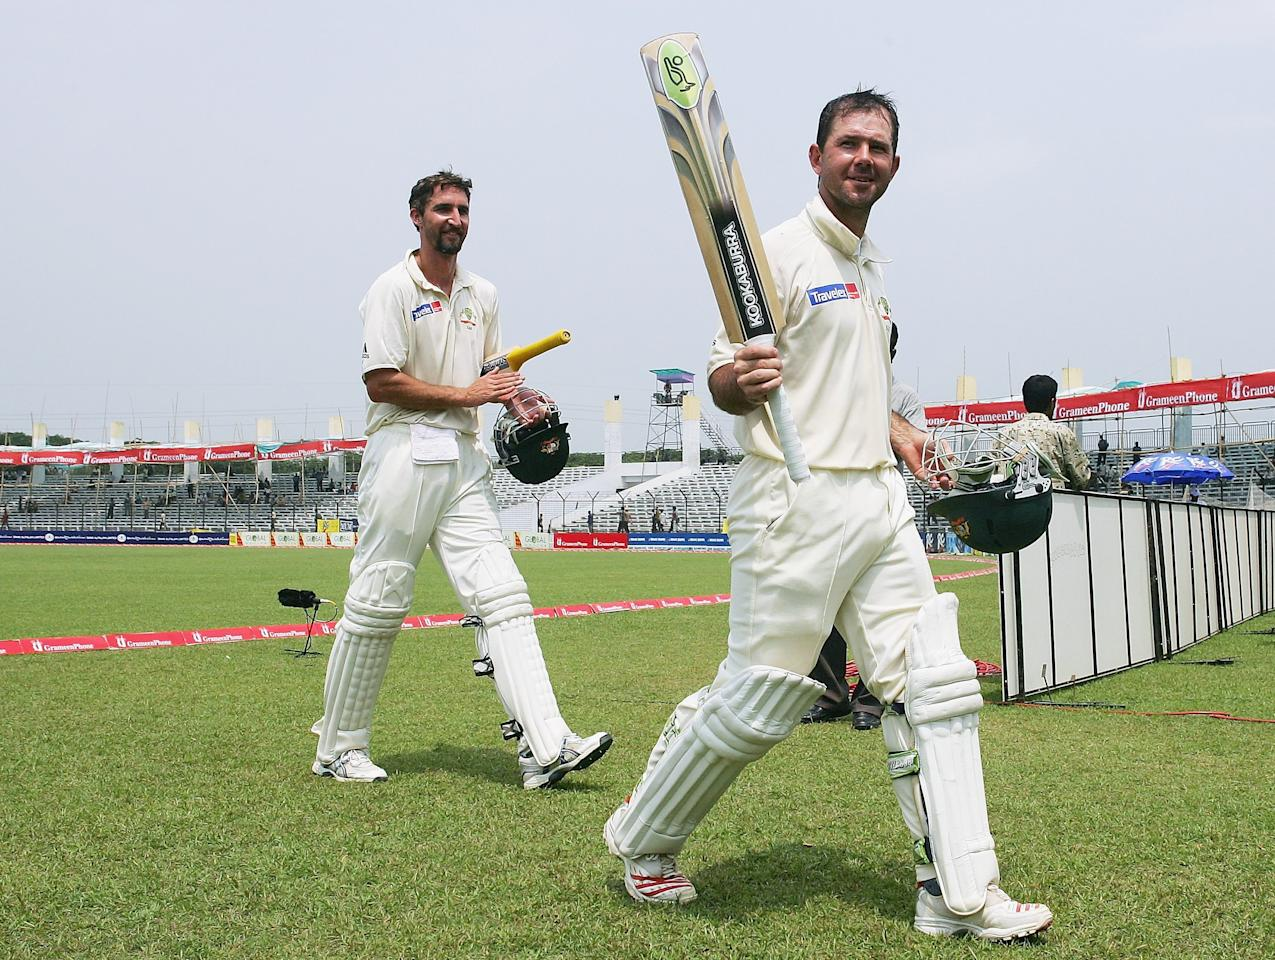 DHAKA, BANGLADESH - APRIL 13:  Ricky Ponting (R) and Jason Gillespie of Australia celebrate victory as they leave field during day five of the First Test between Bangladesh and Australia played at the Fatullah Ground on April 13, 2006 in Dhaka, Bangladesh.  (Photo by Hamish Blair/Getty Images)